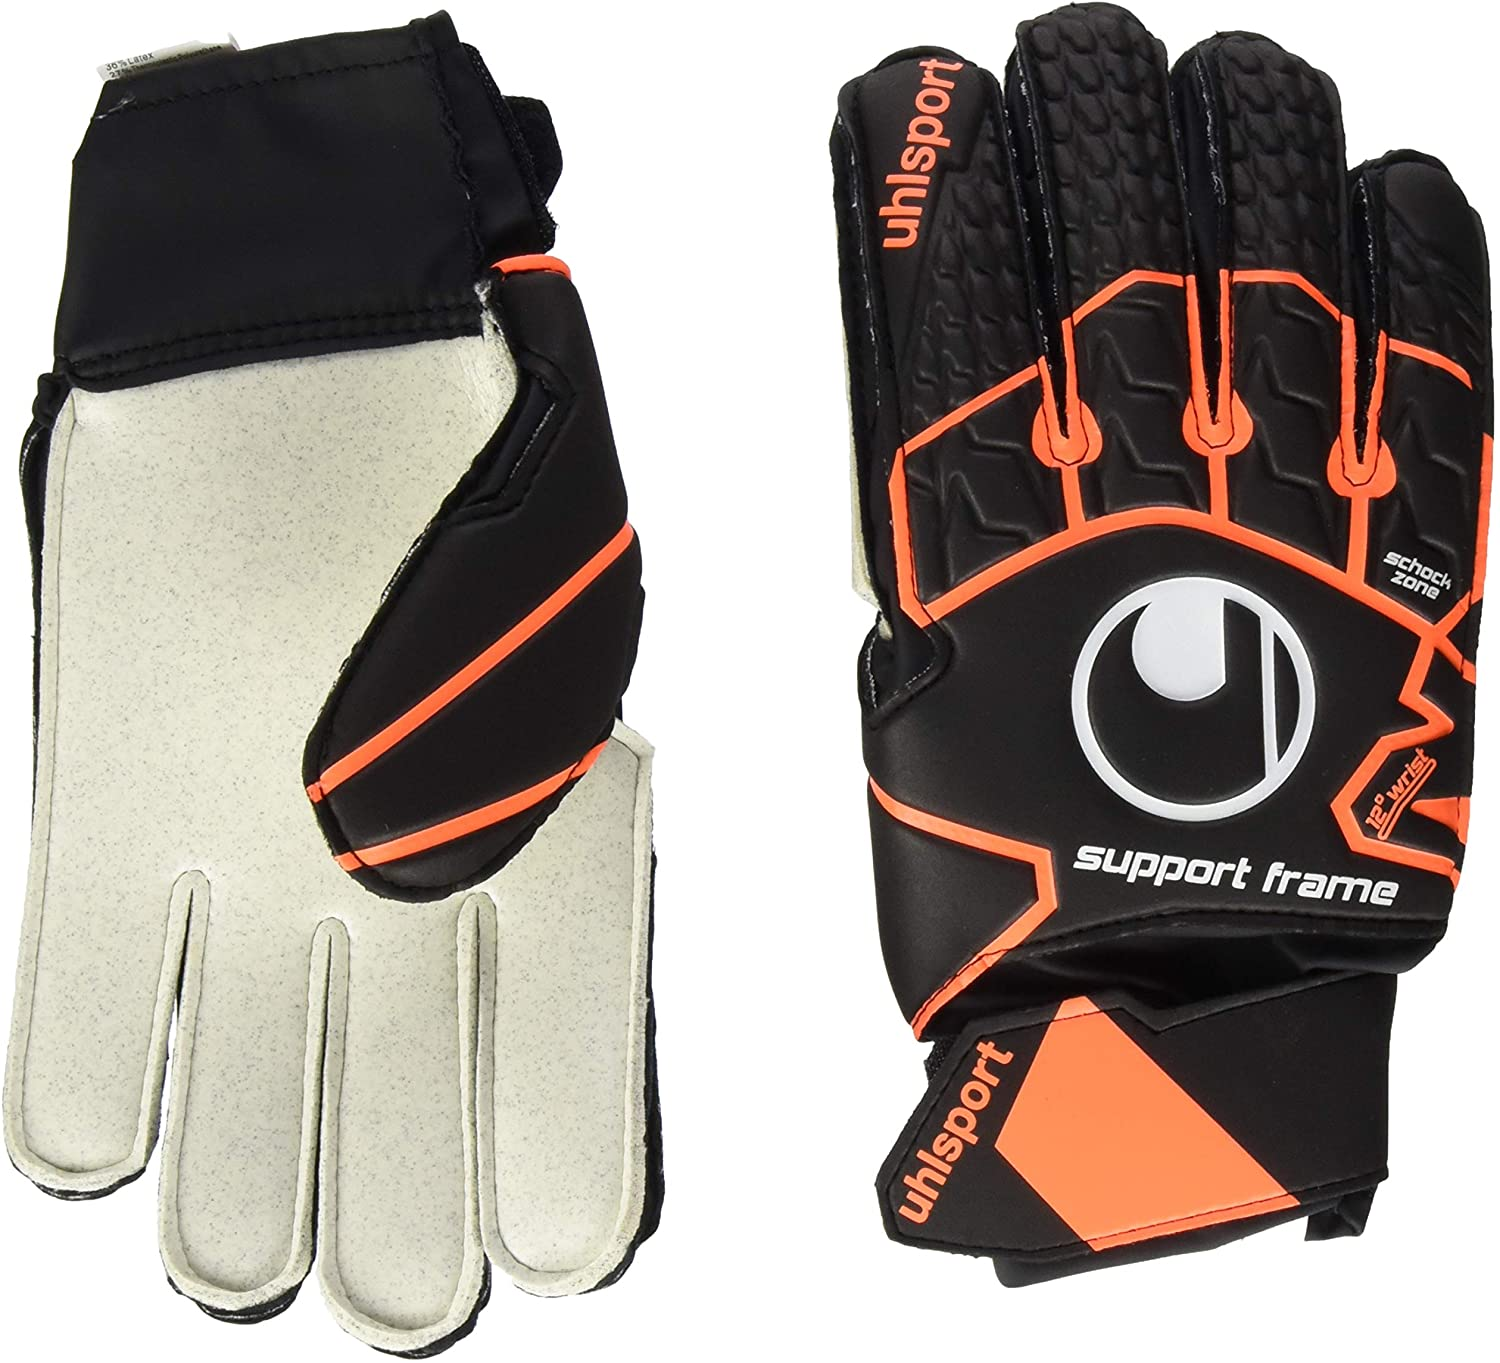 uhlsport Soft Resist SUPPORTFRAME Junior Astro Hard Ground 3G 4G Hard Wearing Goalkeeper Gloves